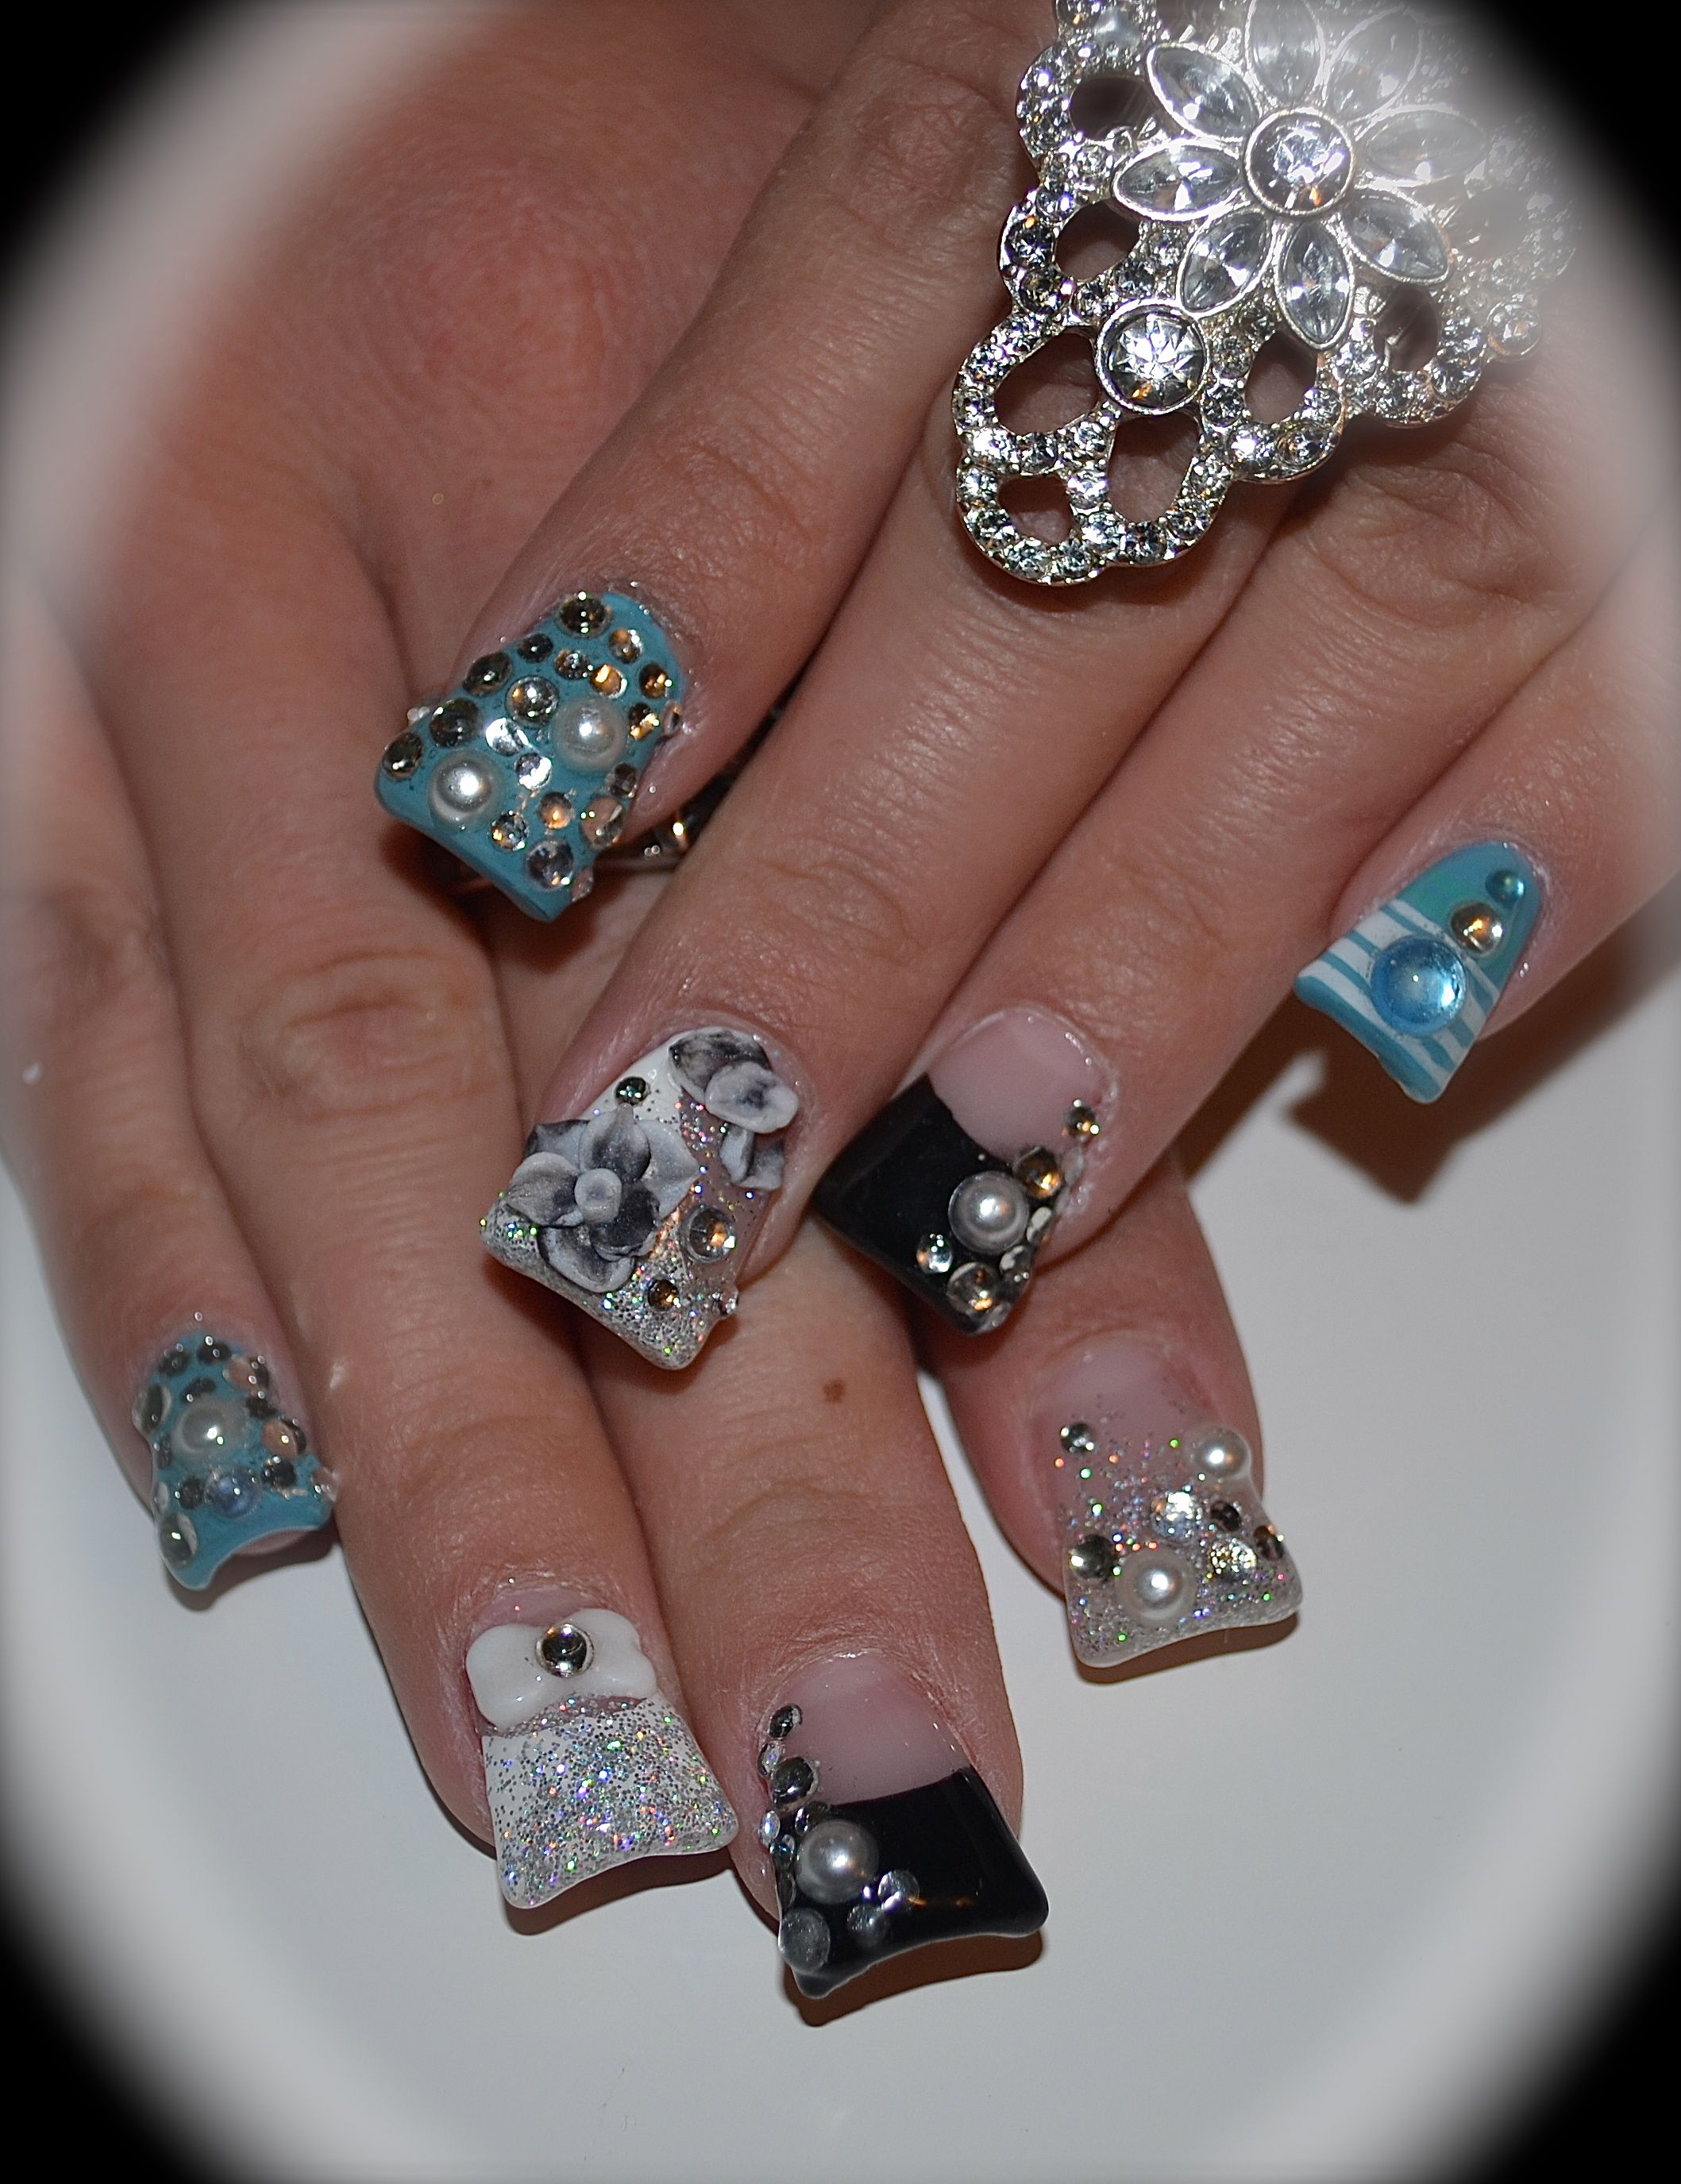 acrylic nails with blue themed nail designs including